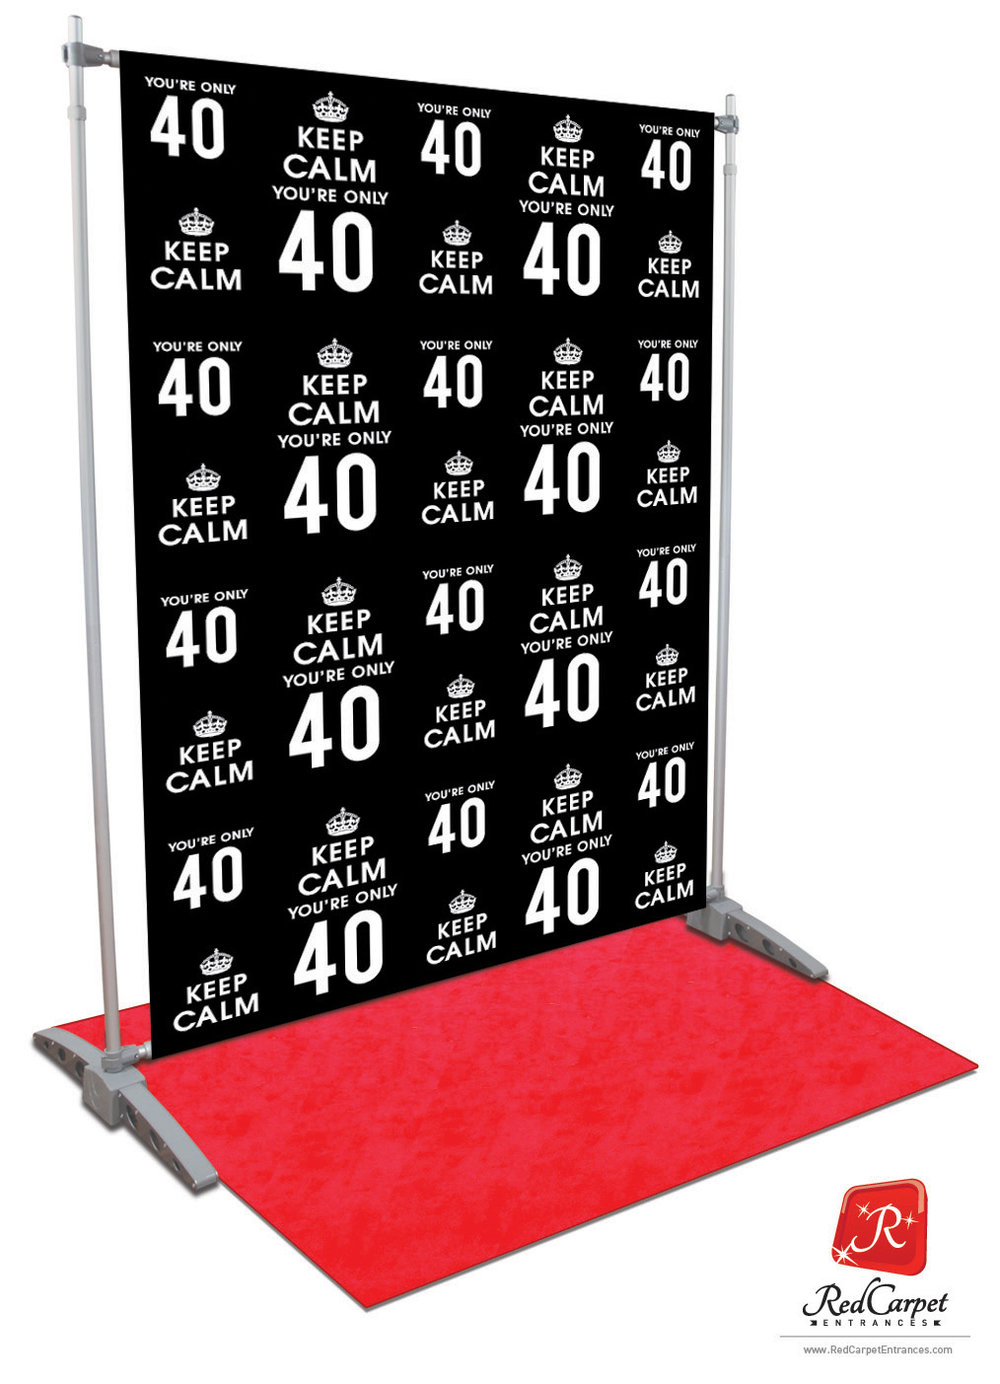 Keep Calm You Re Only 40 Black 5x8 Red Carpet Runner